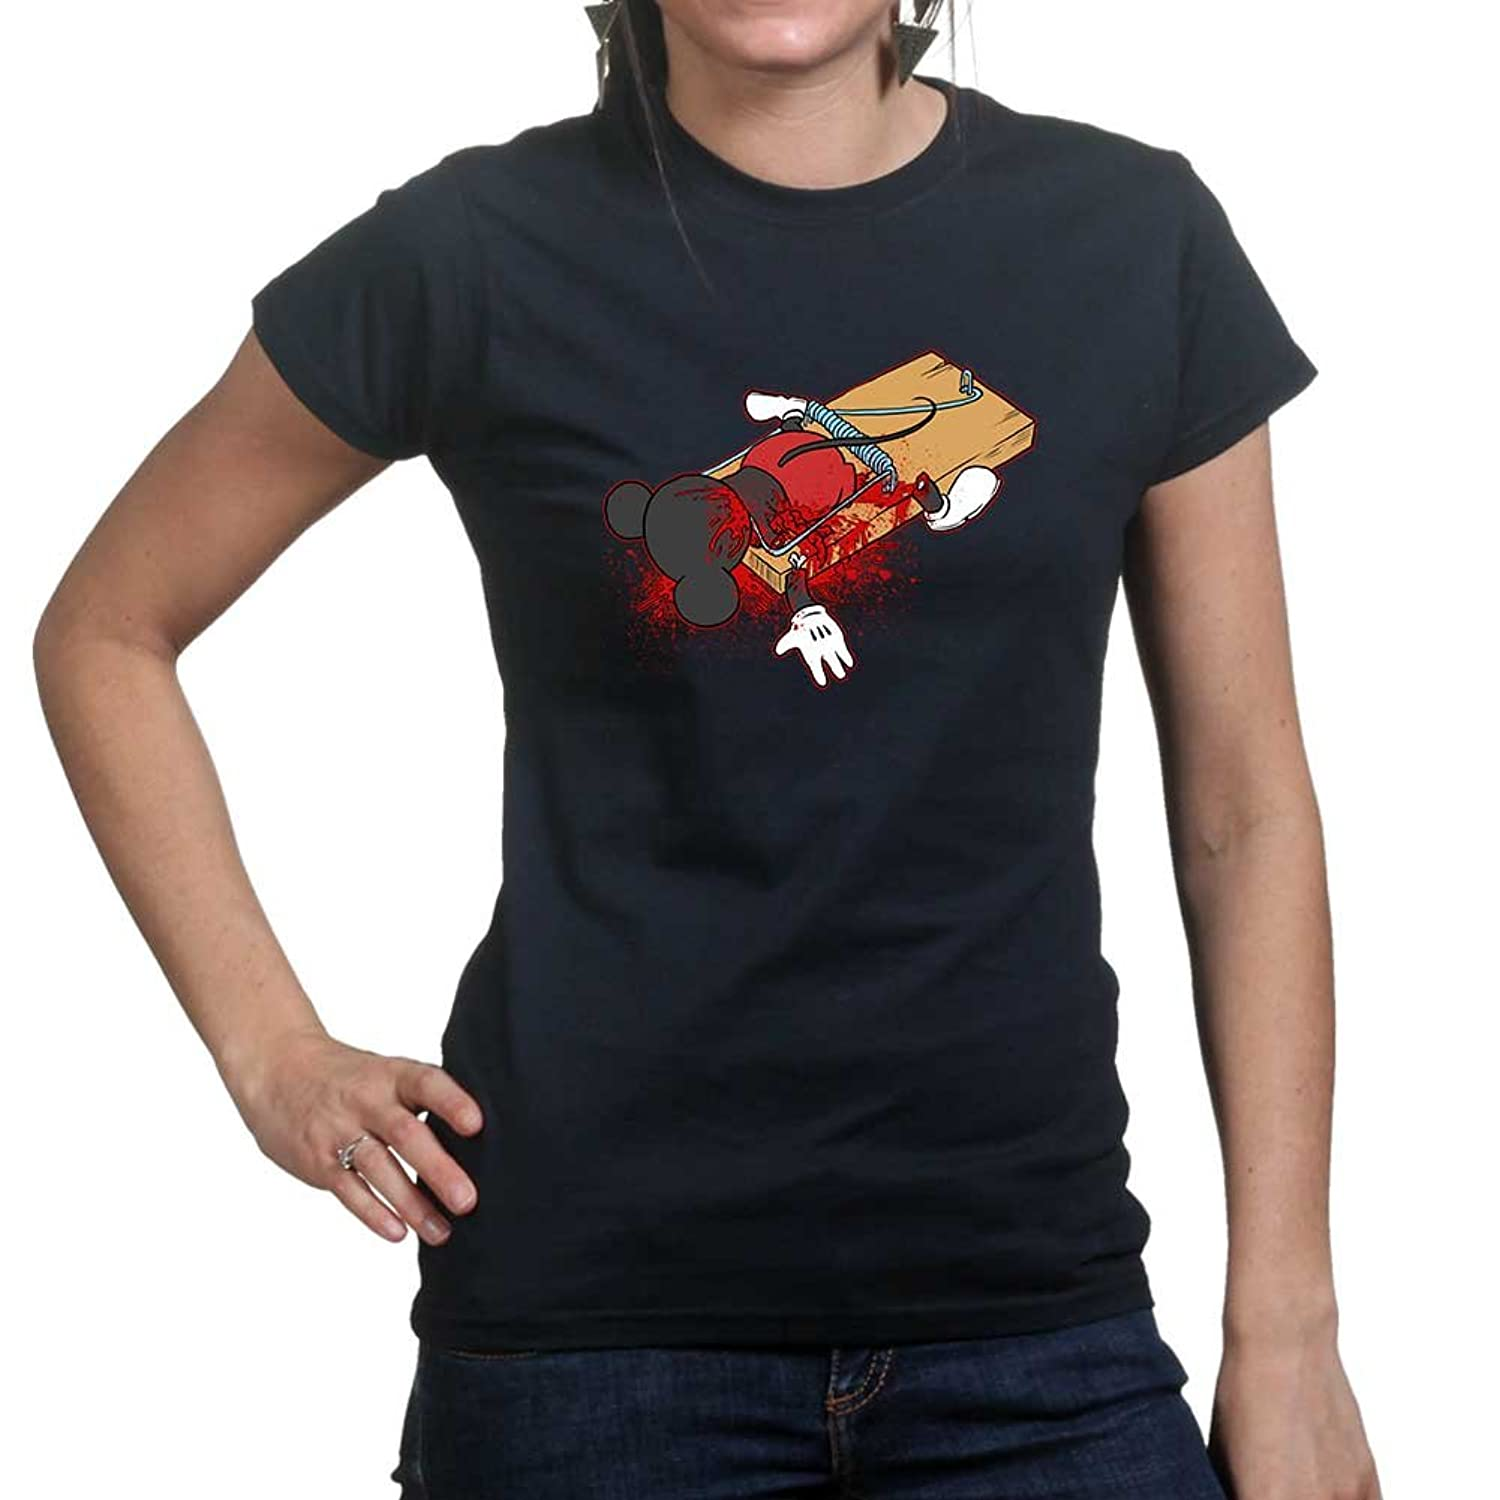 Customised_Perfection Womens Mouse Trap Cartoon Funny Halloween Ladies T  Shirt (Tee, Top): Amazon.co.uk: Clothing